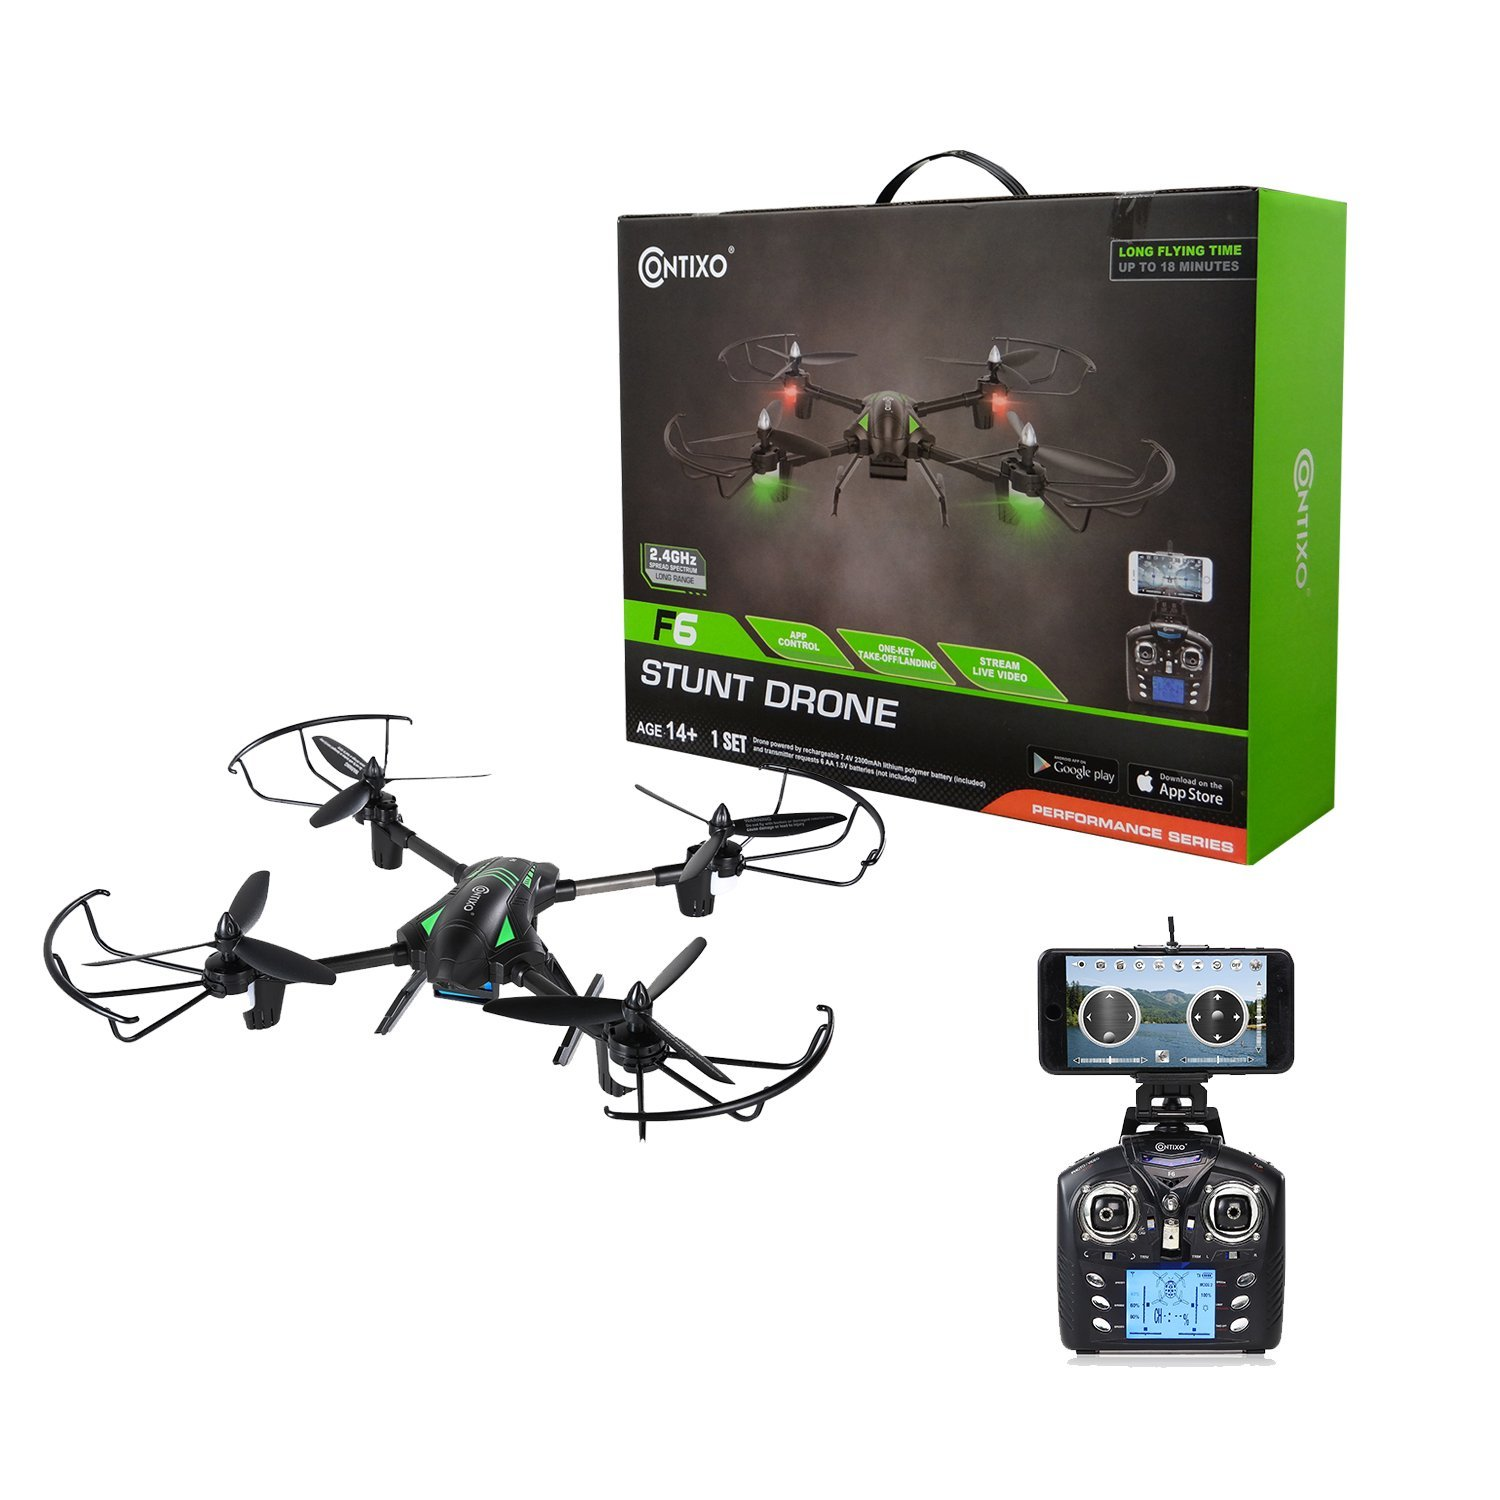 Contixo F6 RC Quadcopter Racing Drone 2.4Ghz 6-Axis Gyro with 720P Rotating HD Camera, FPV... by Contixo